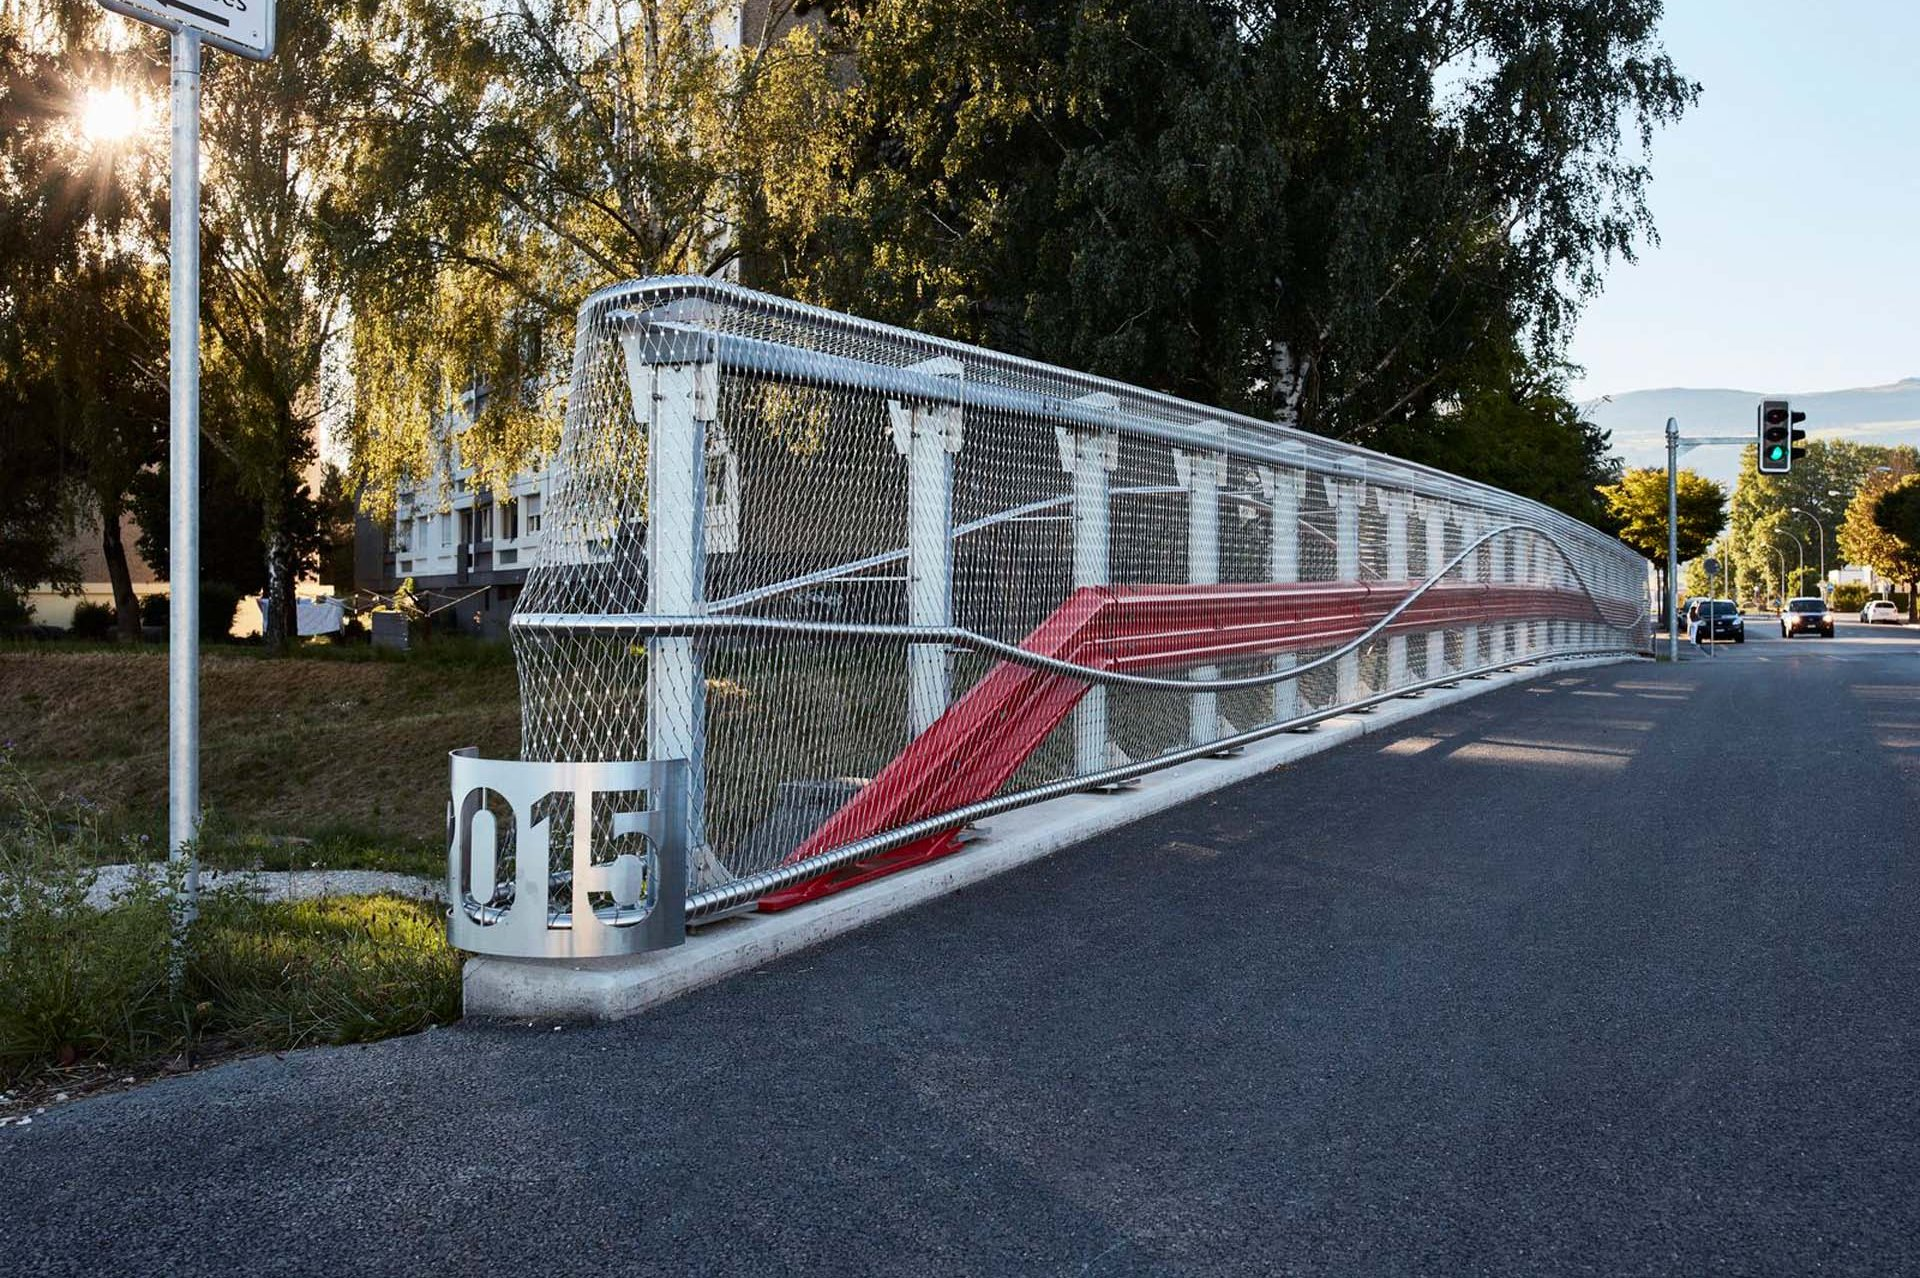 Webnet covers the railings on both sides of the bridge. It serves not only as a railing infill, but lets the striking red crash barriers and the curved steel railings shine.